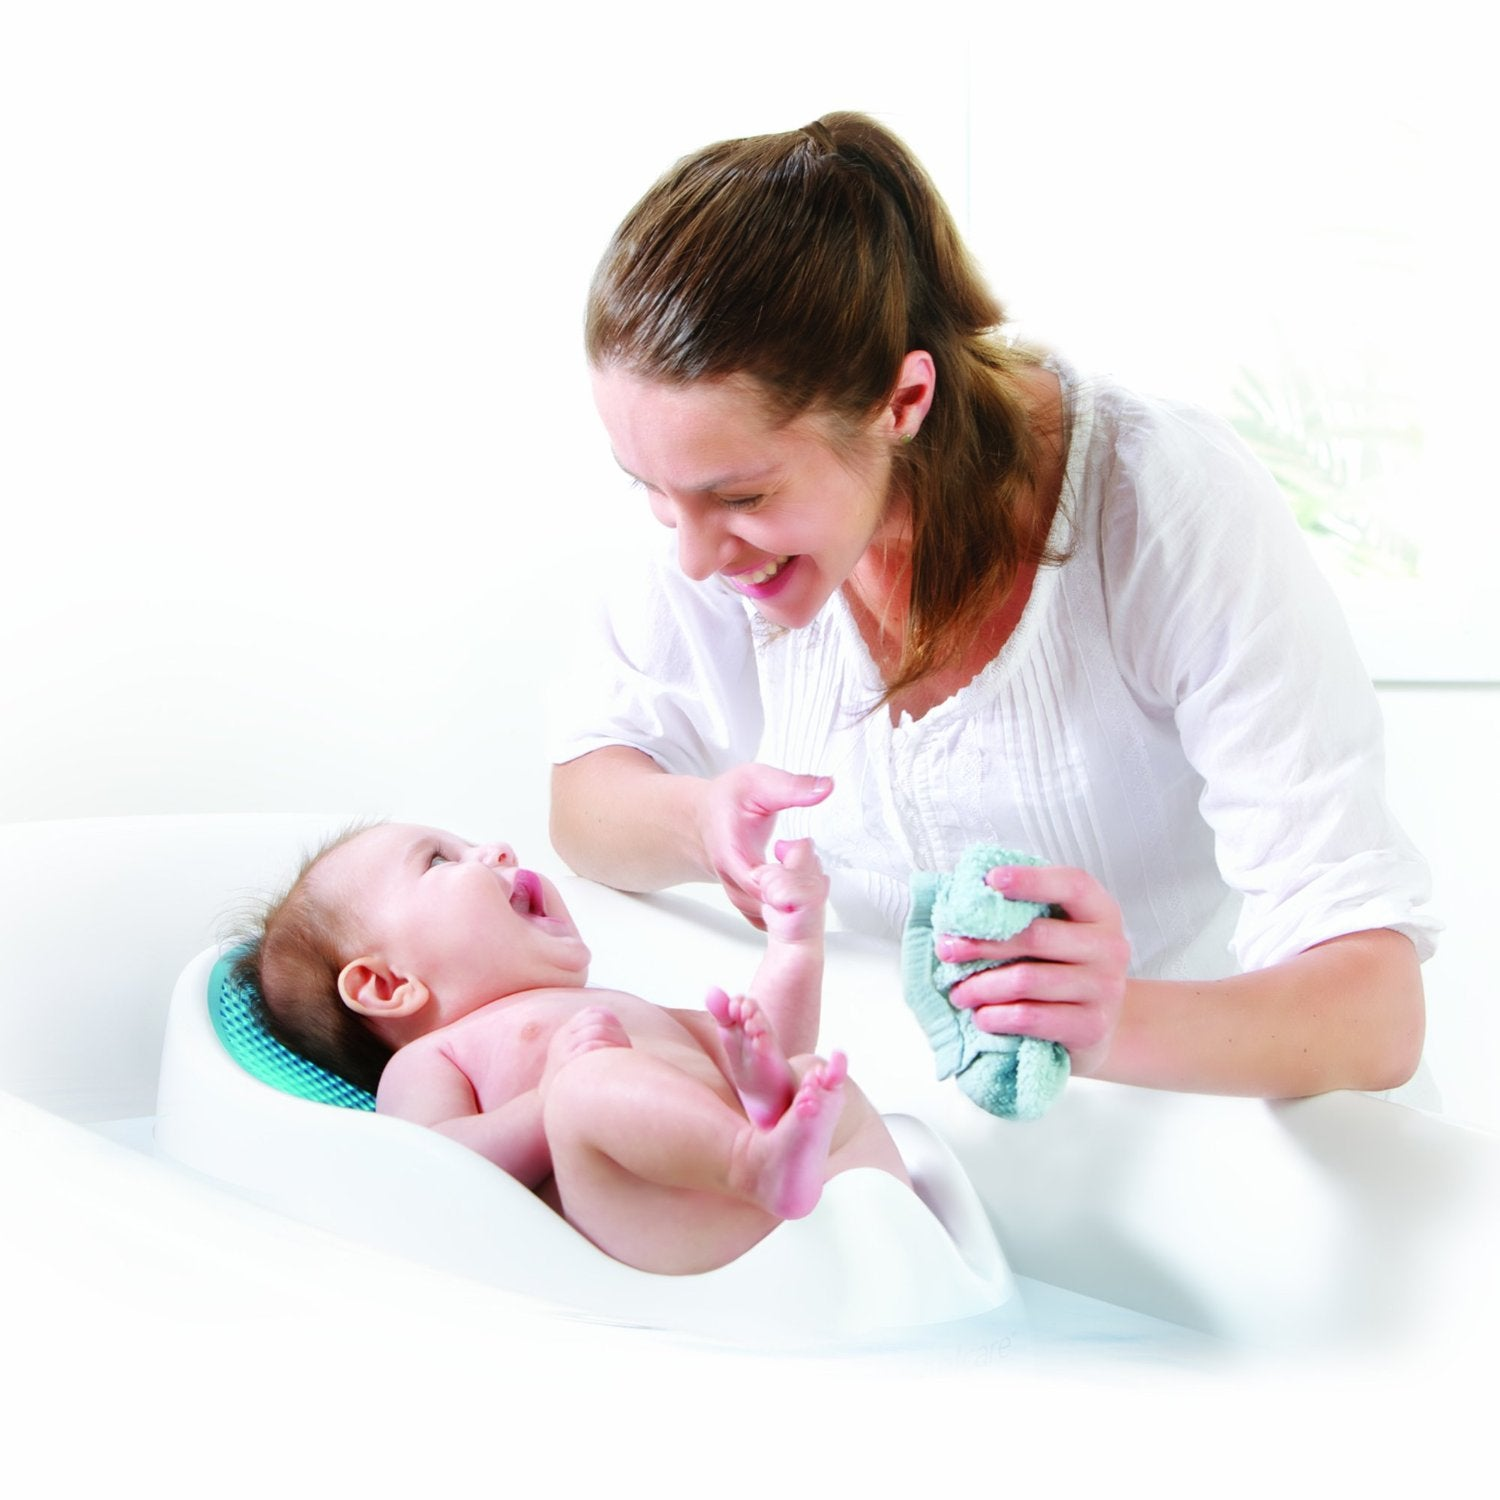 Person, Baby Bath Must-Have Supplies When You Bathe Your Baby